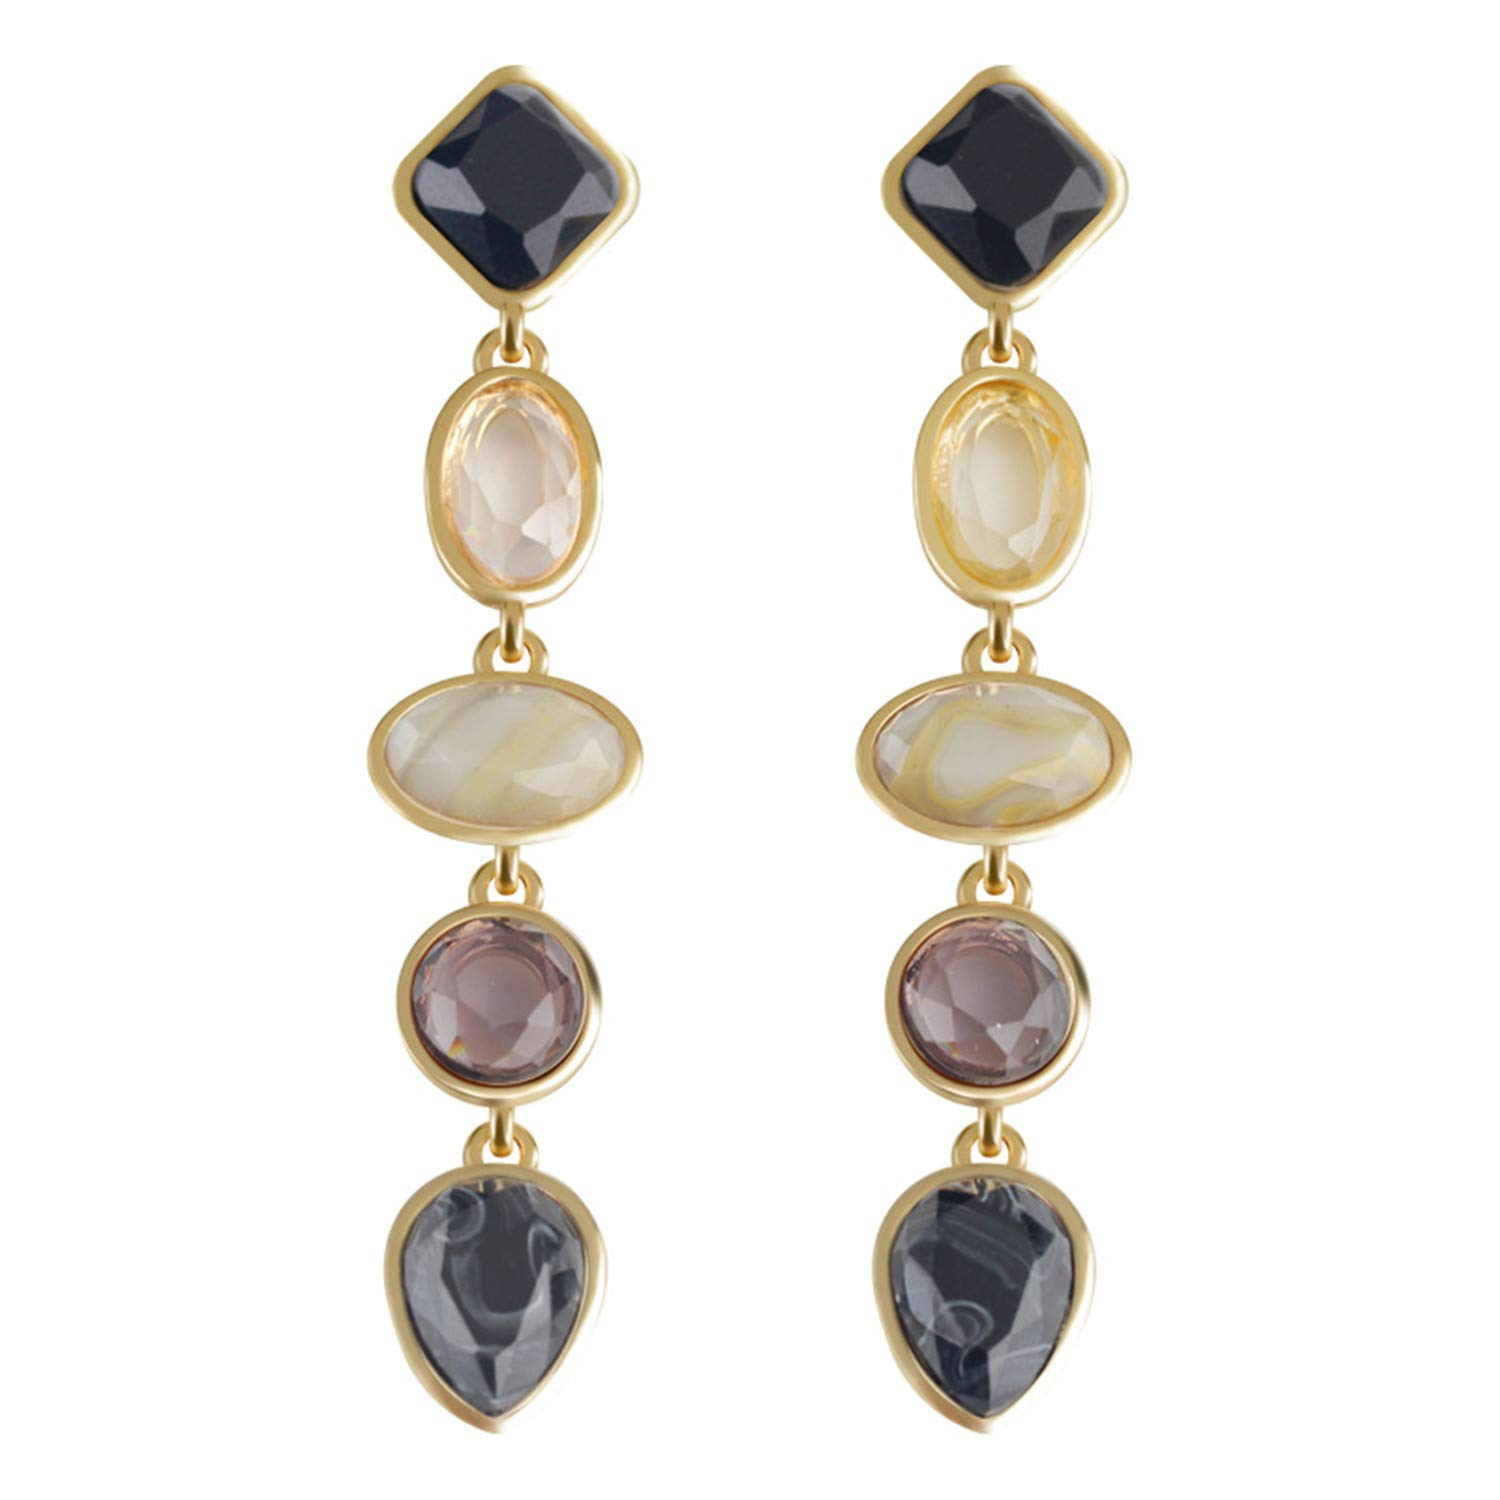 CLUB Fashion Europe and The United States New Resin Earrings Earrings Ear Jewelry